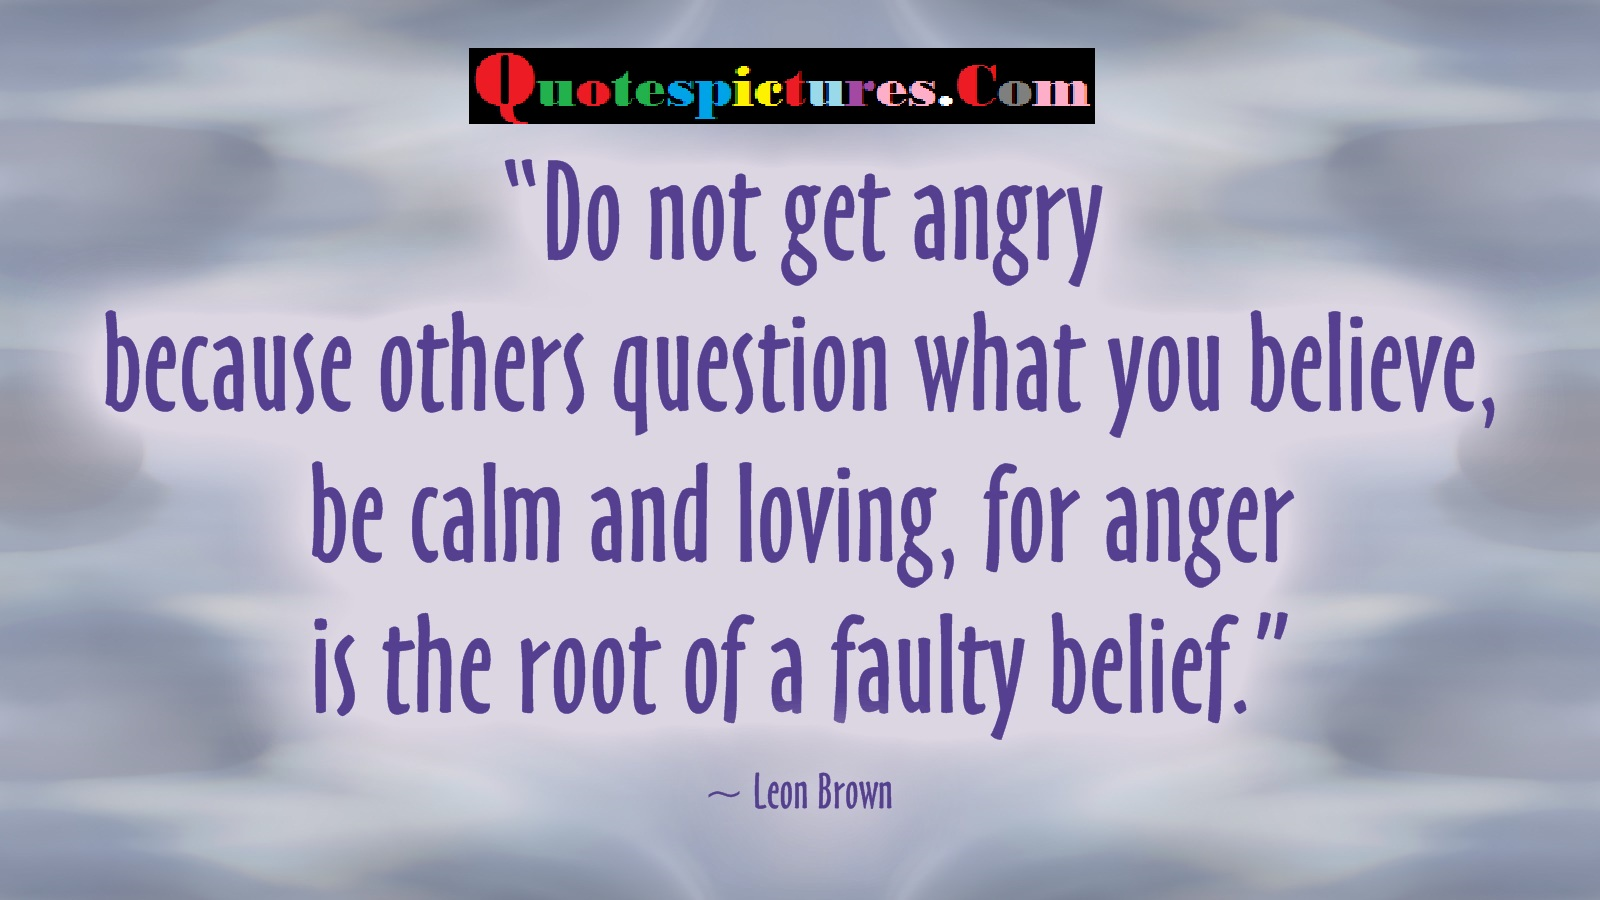 Belief Quotes - Be Calm And Loving, For Anger Is The Root Of A Faulty Belief By Leon Brown